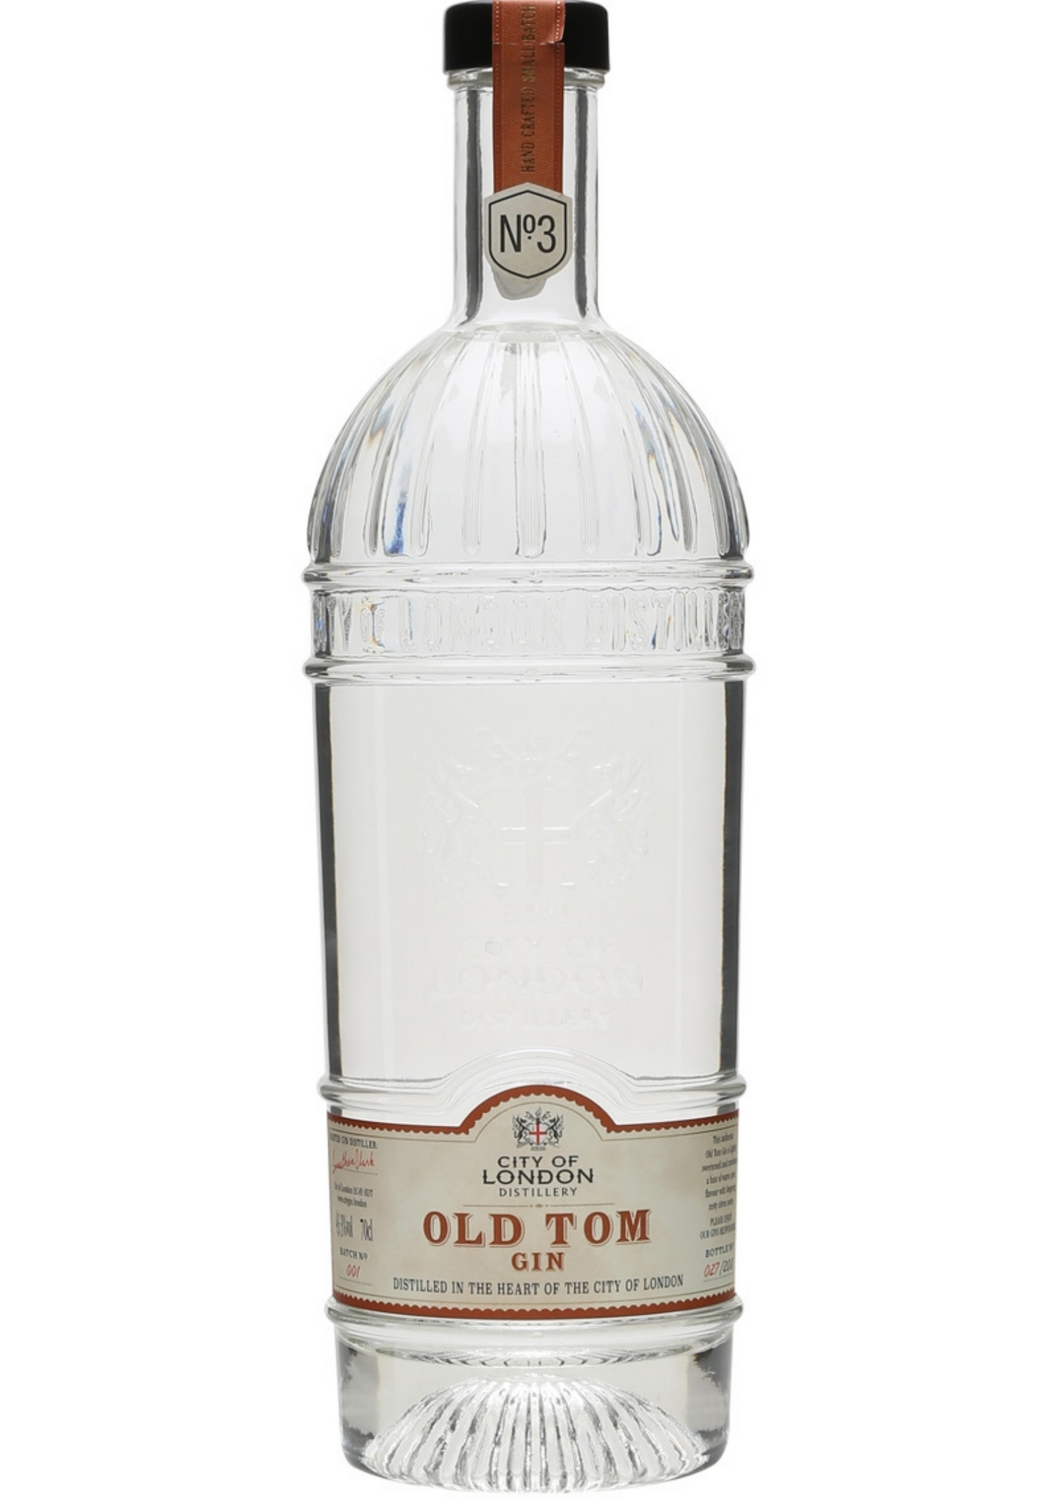 City Of London No.3 Old Tom Gin